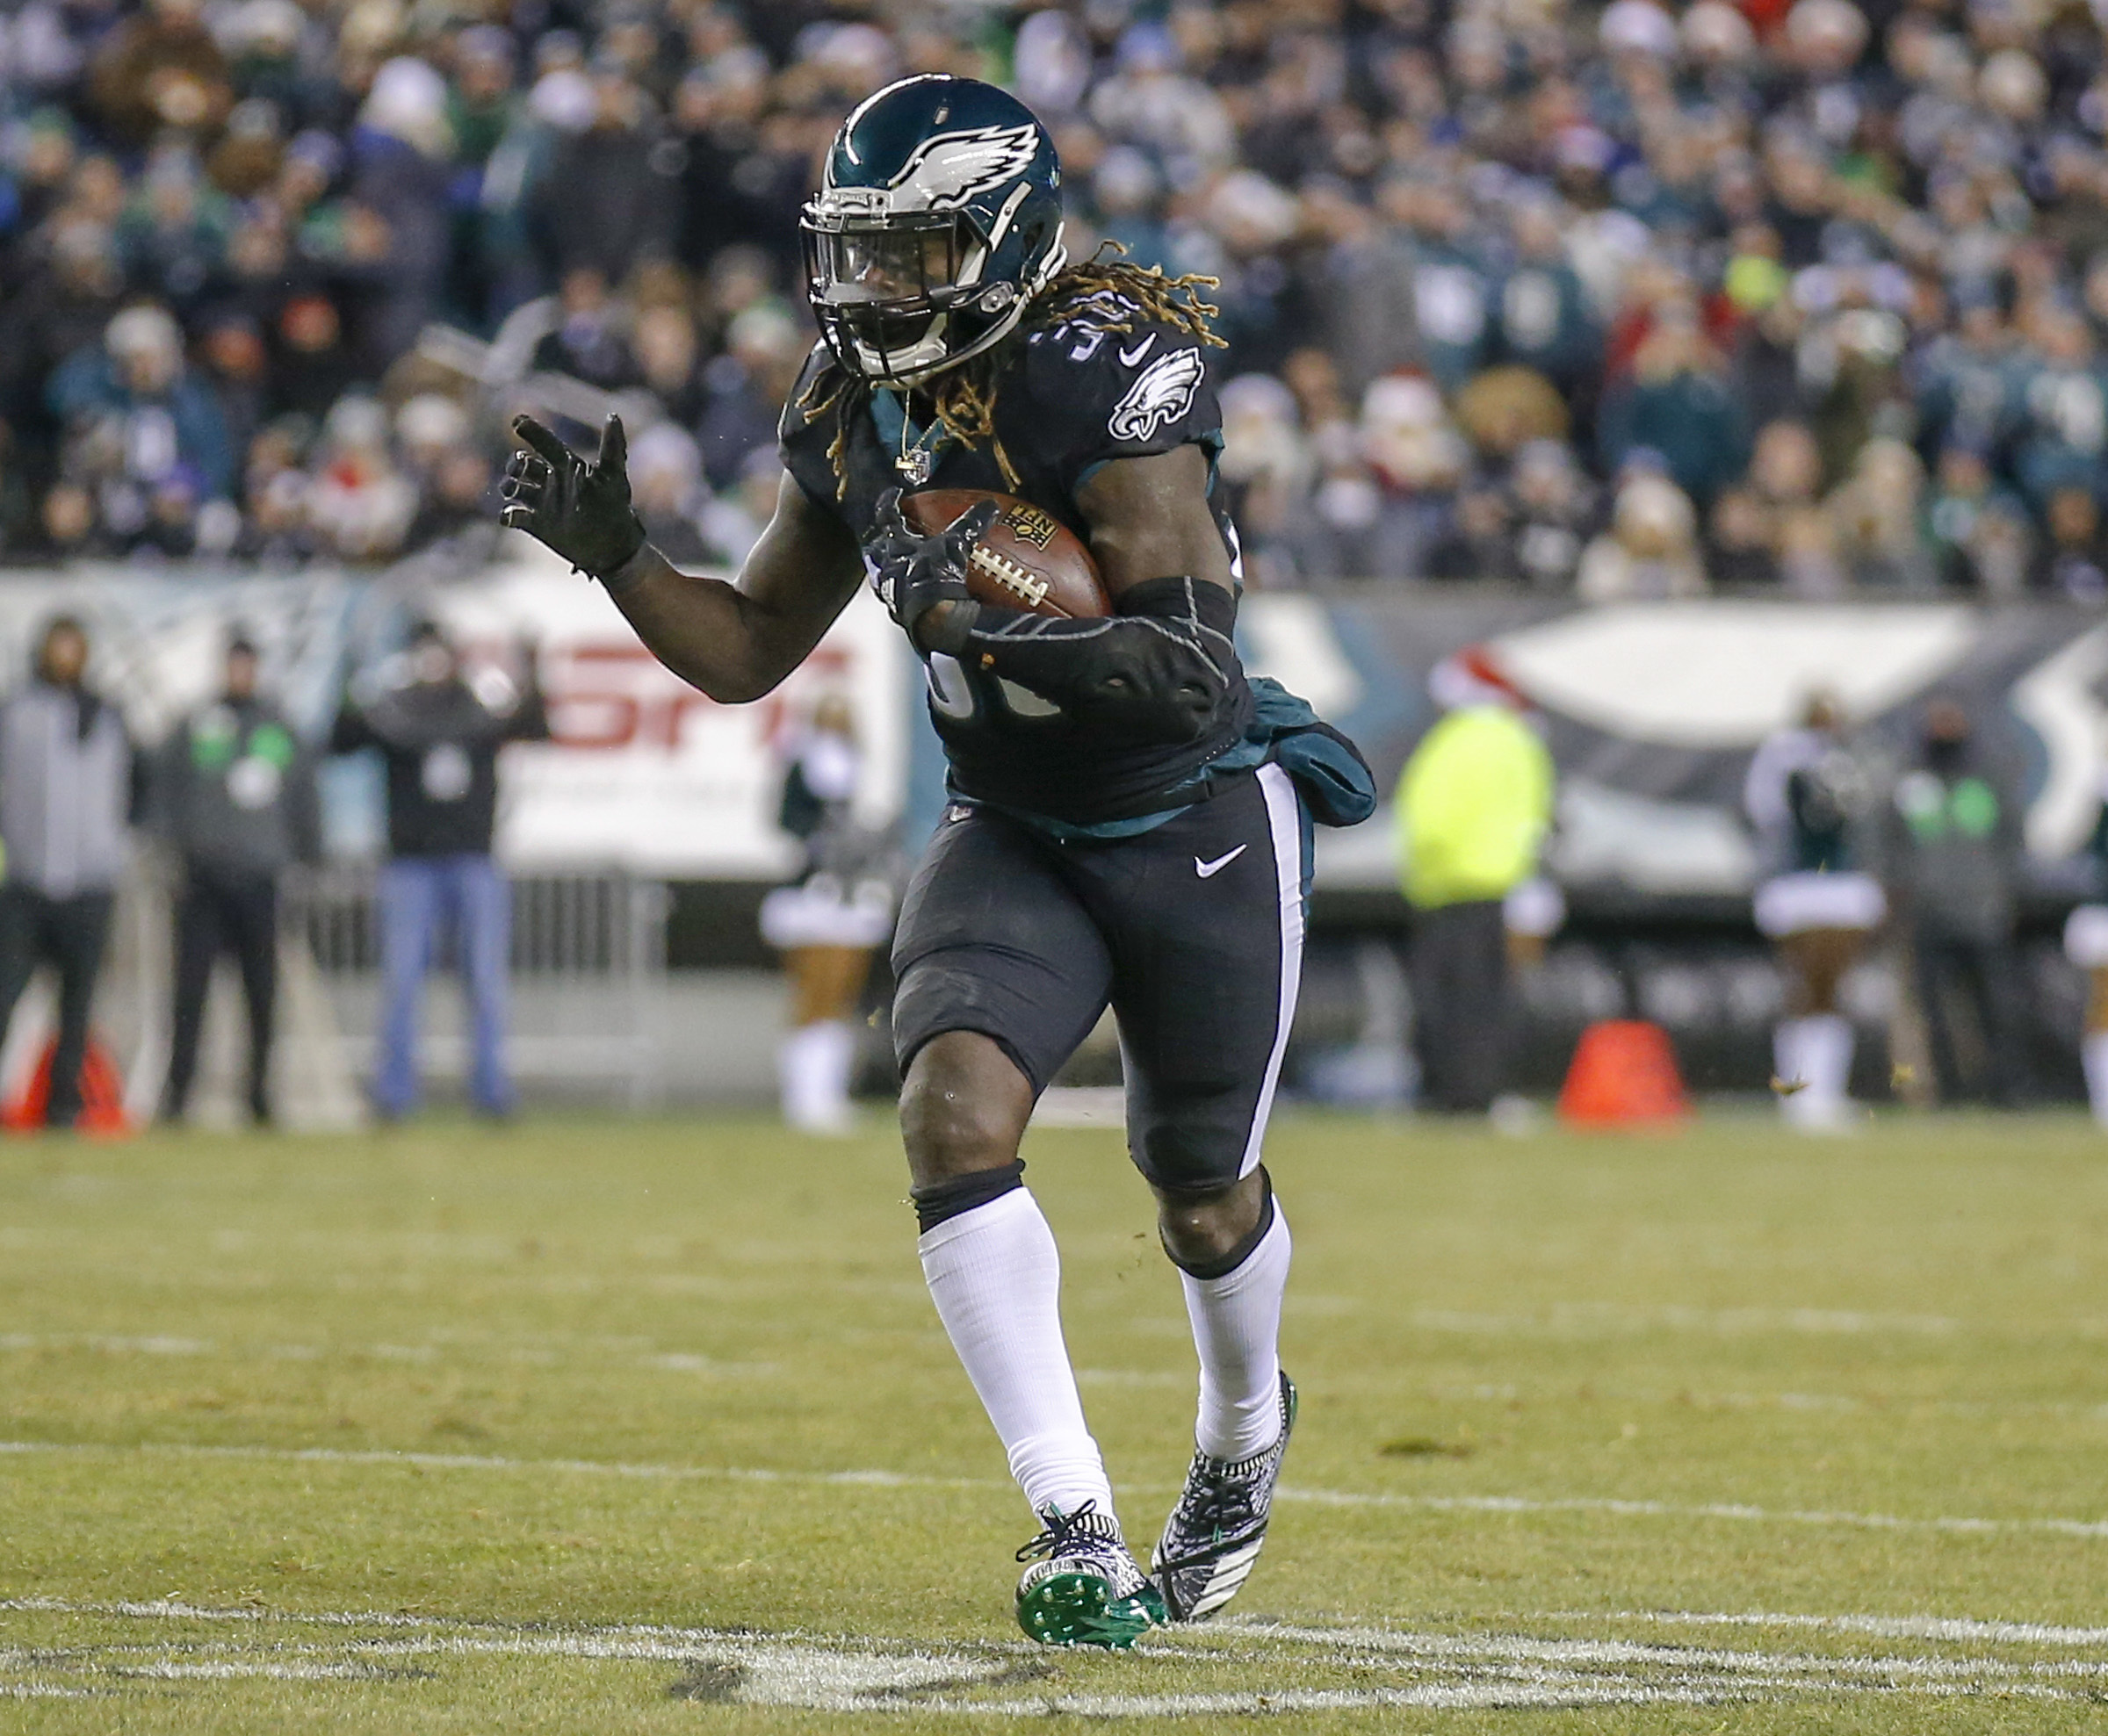 Eagles running back Jay Ajayi runs with the football against the Oakland Raiders on Monday, December 25, 2017 in Philadelphia. YONG KIM / Staff Photographer